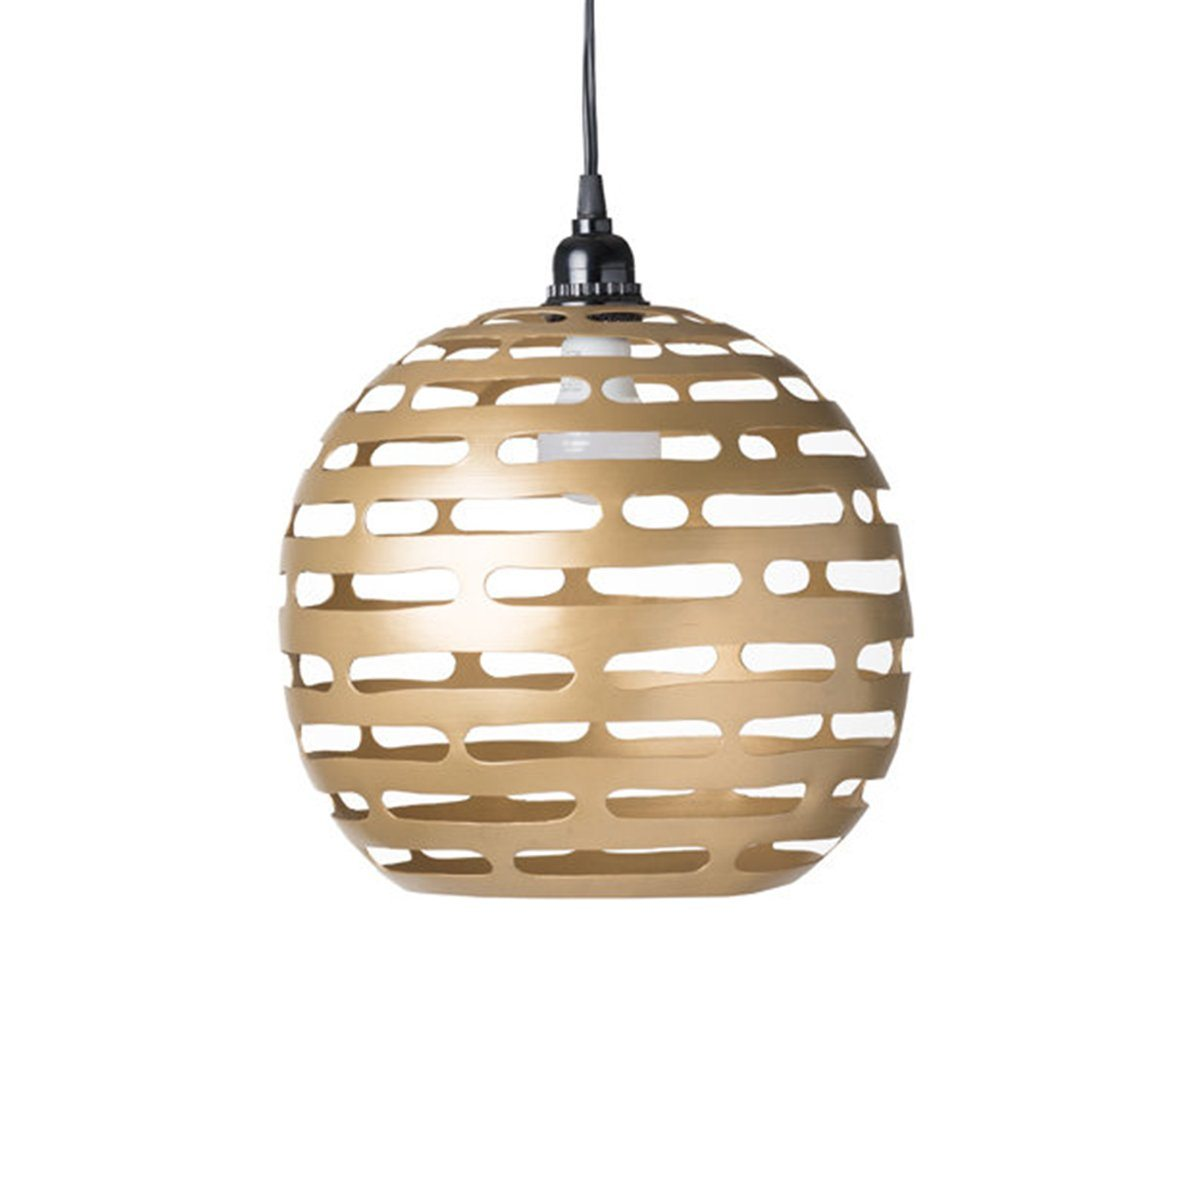 EARTH WIND FIRE LIGHTING PENDANT SMALL GOLD - Showhome Furniture